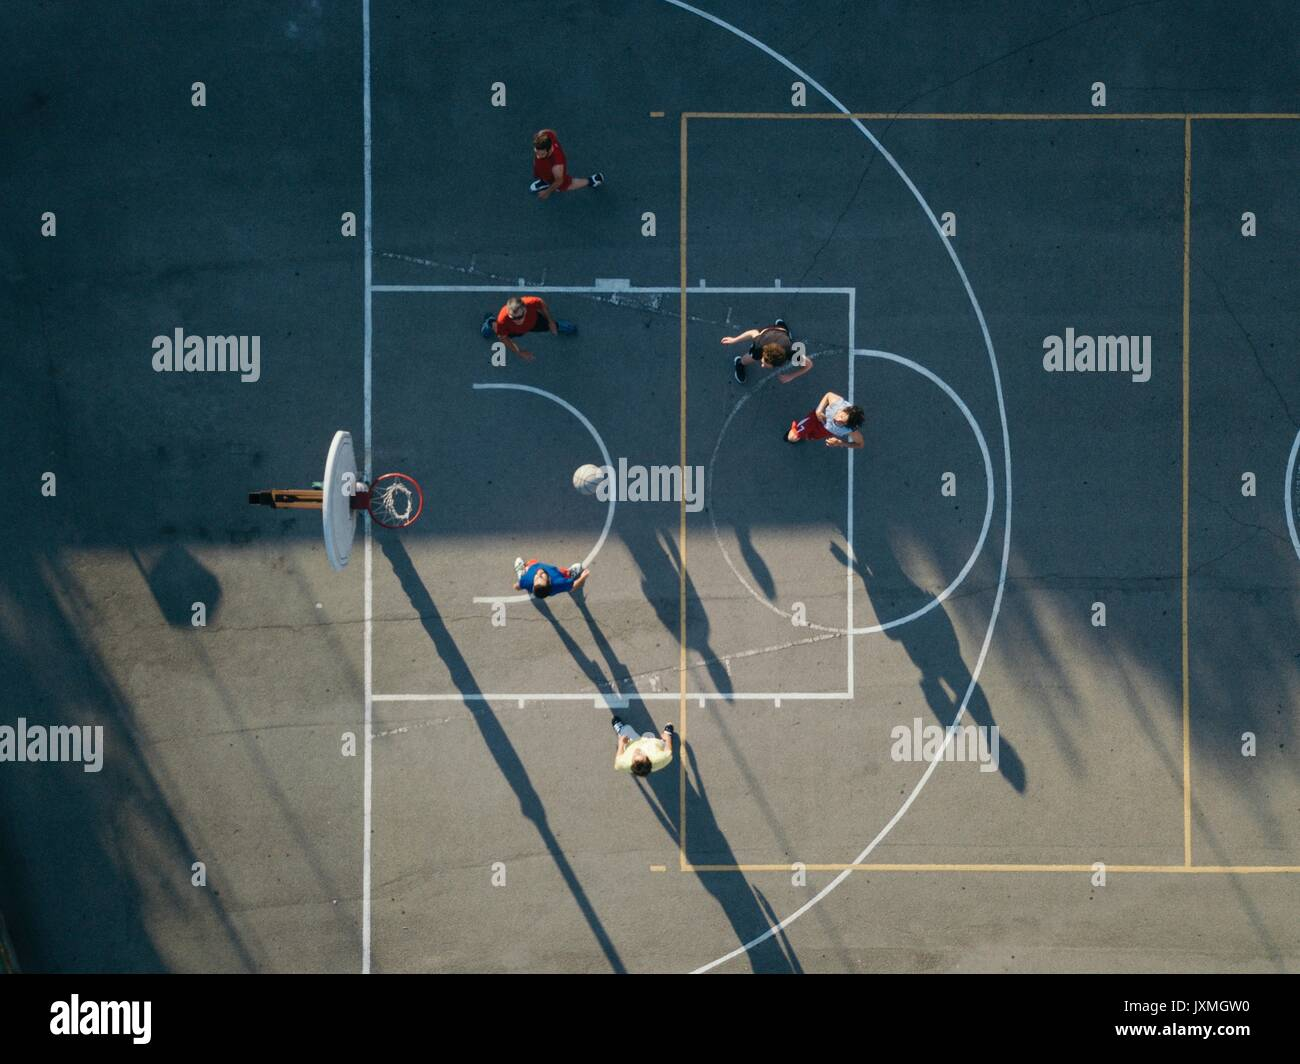 Overhead view of friends on basketball court playing basketball game - Stock Image